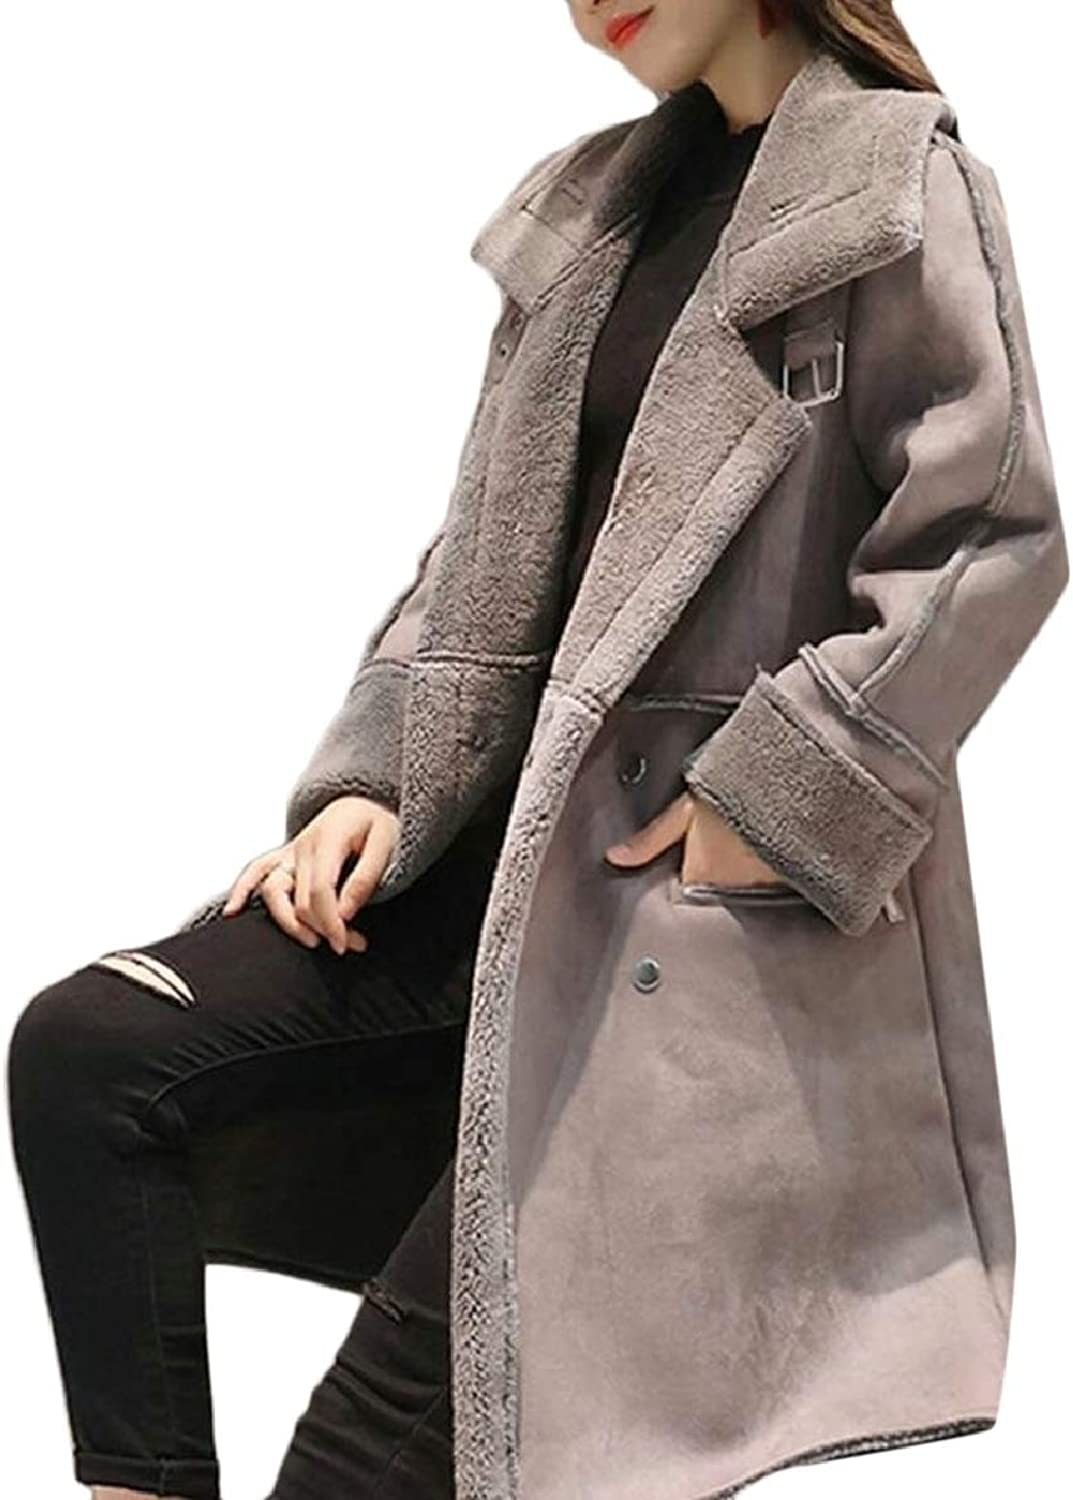 Women's Winter Warm Faux Suede Lapel Slim Fit Mid Long Length Jackets